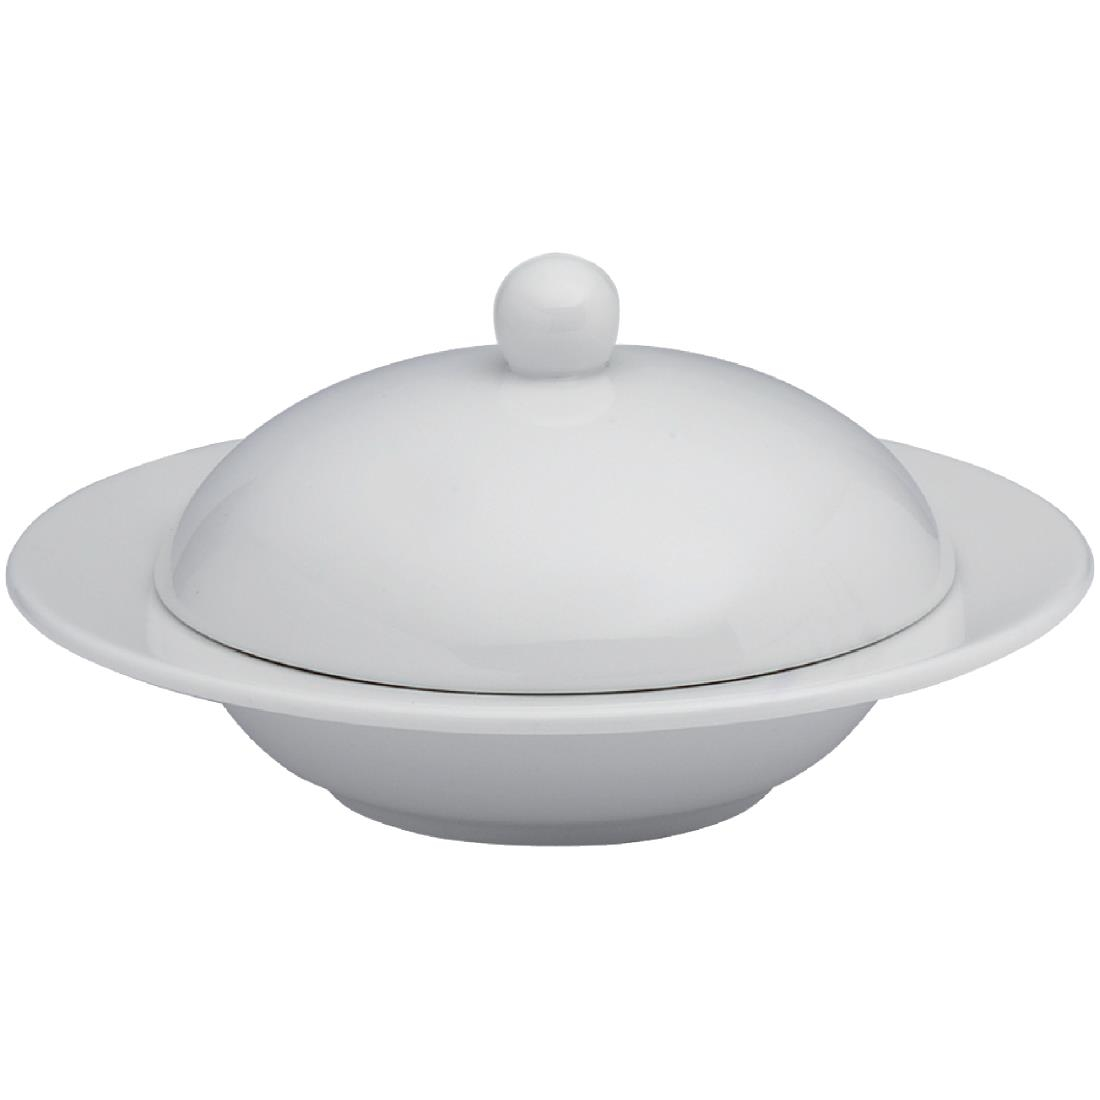 Image of Elia Glacier Fine China Covered Butter Dishes 115mm (Pack of 4) Pack of 4